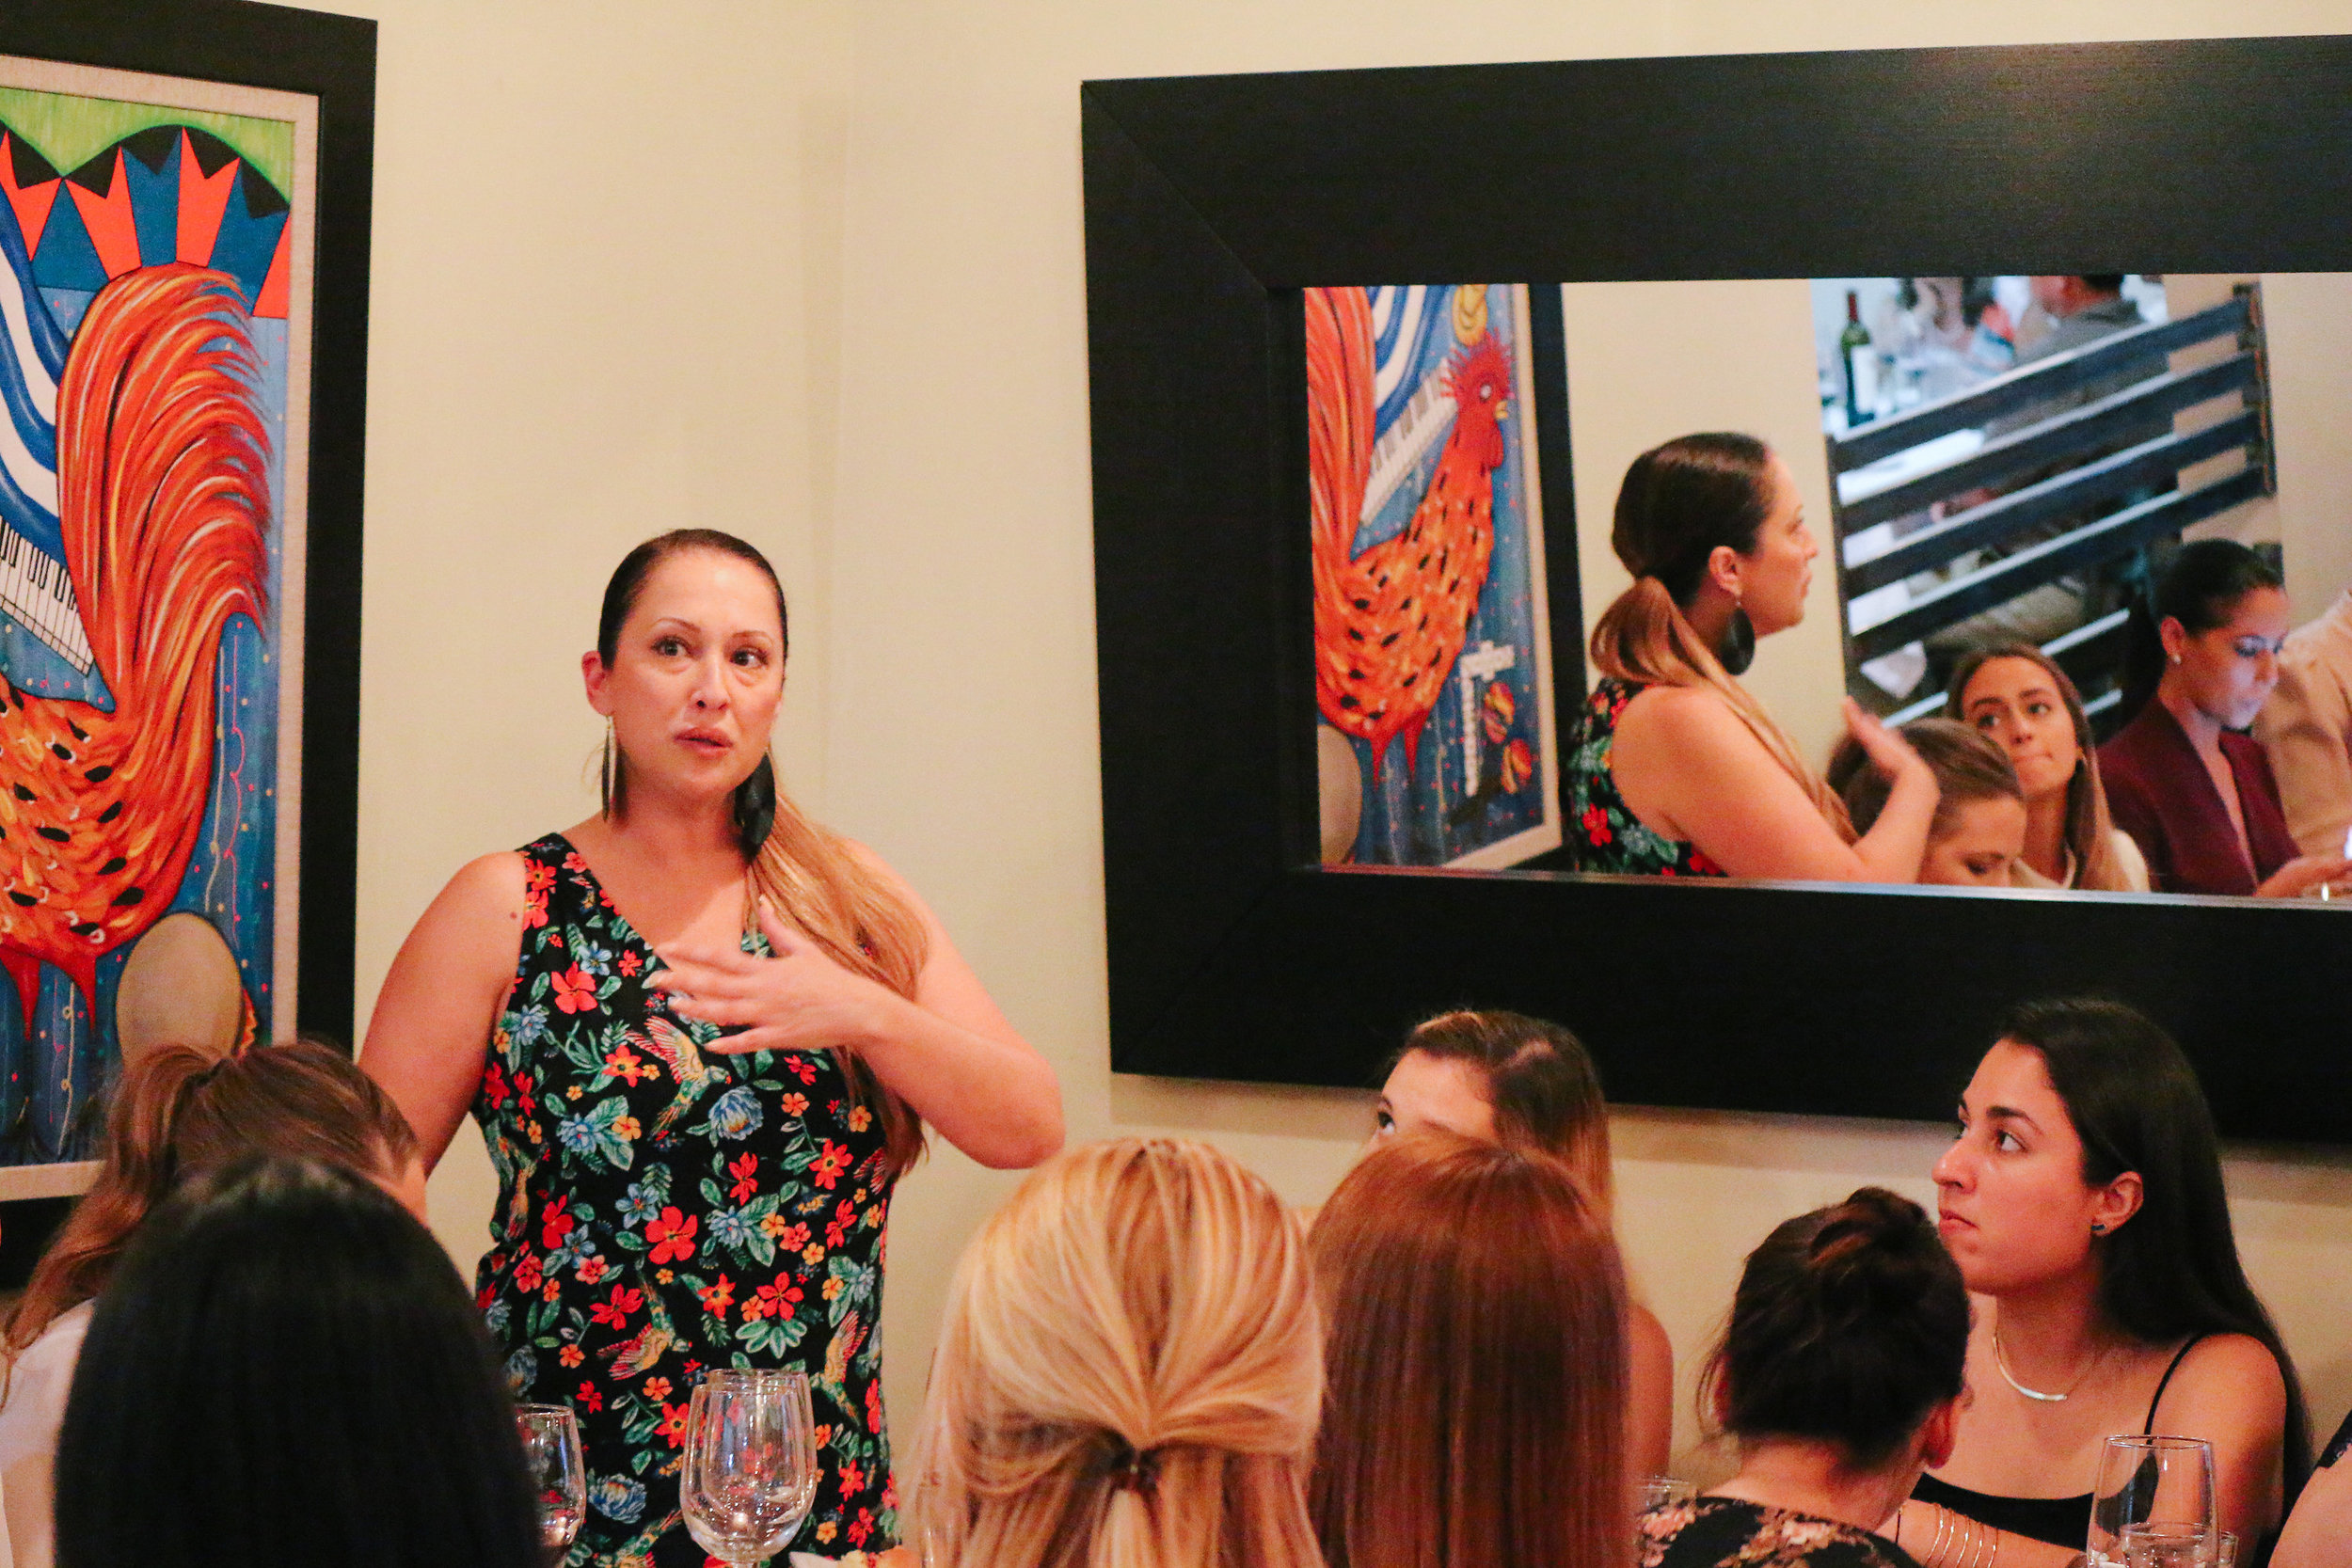 Women Who Wine_Uncorked Conversations_Off The Mile_Miami Wine Events_Wine Tasting Miami_52.jpg